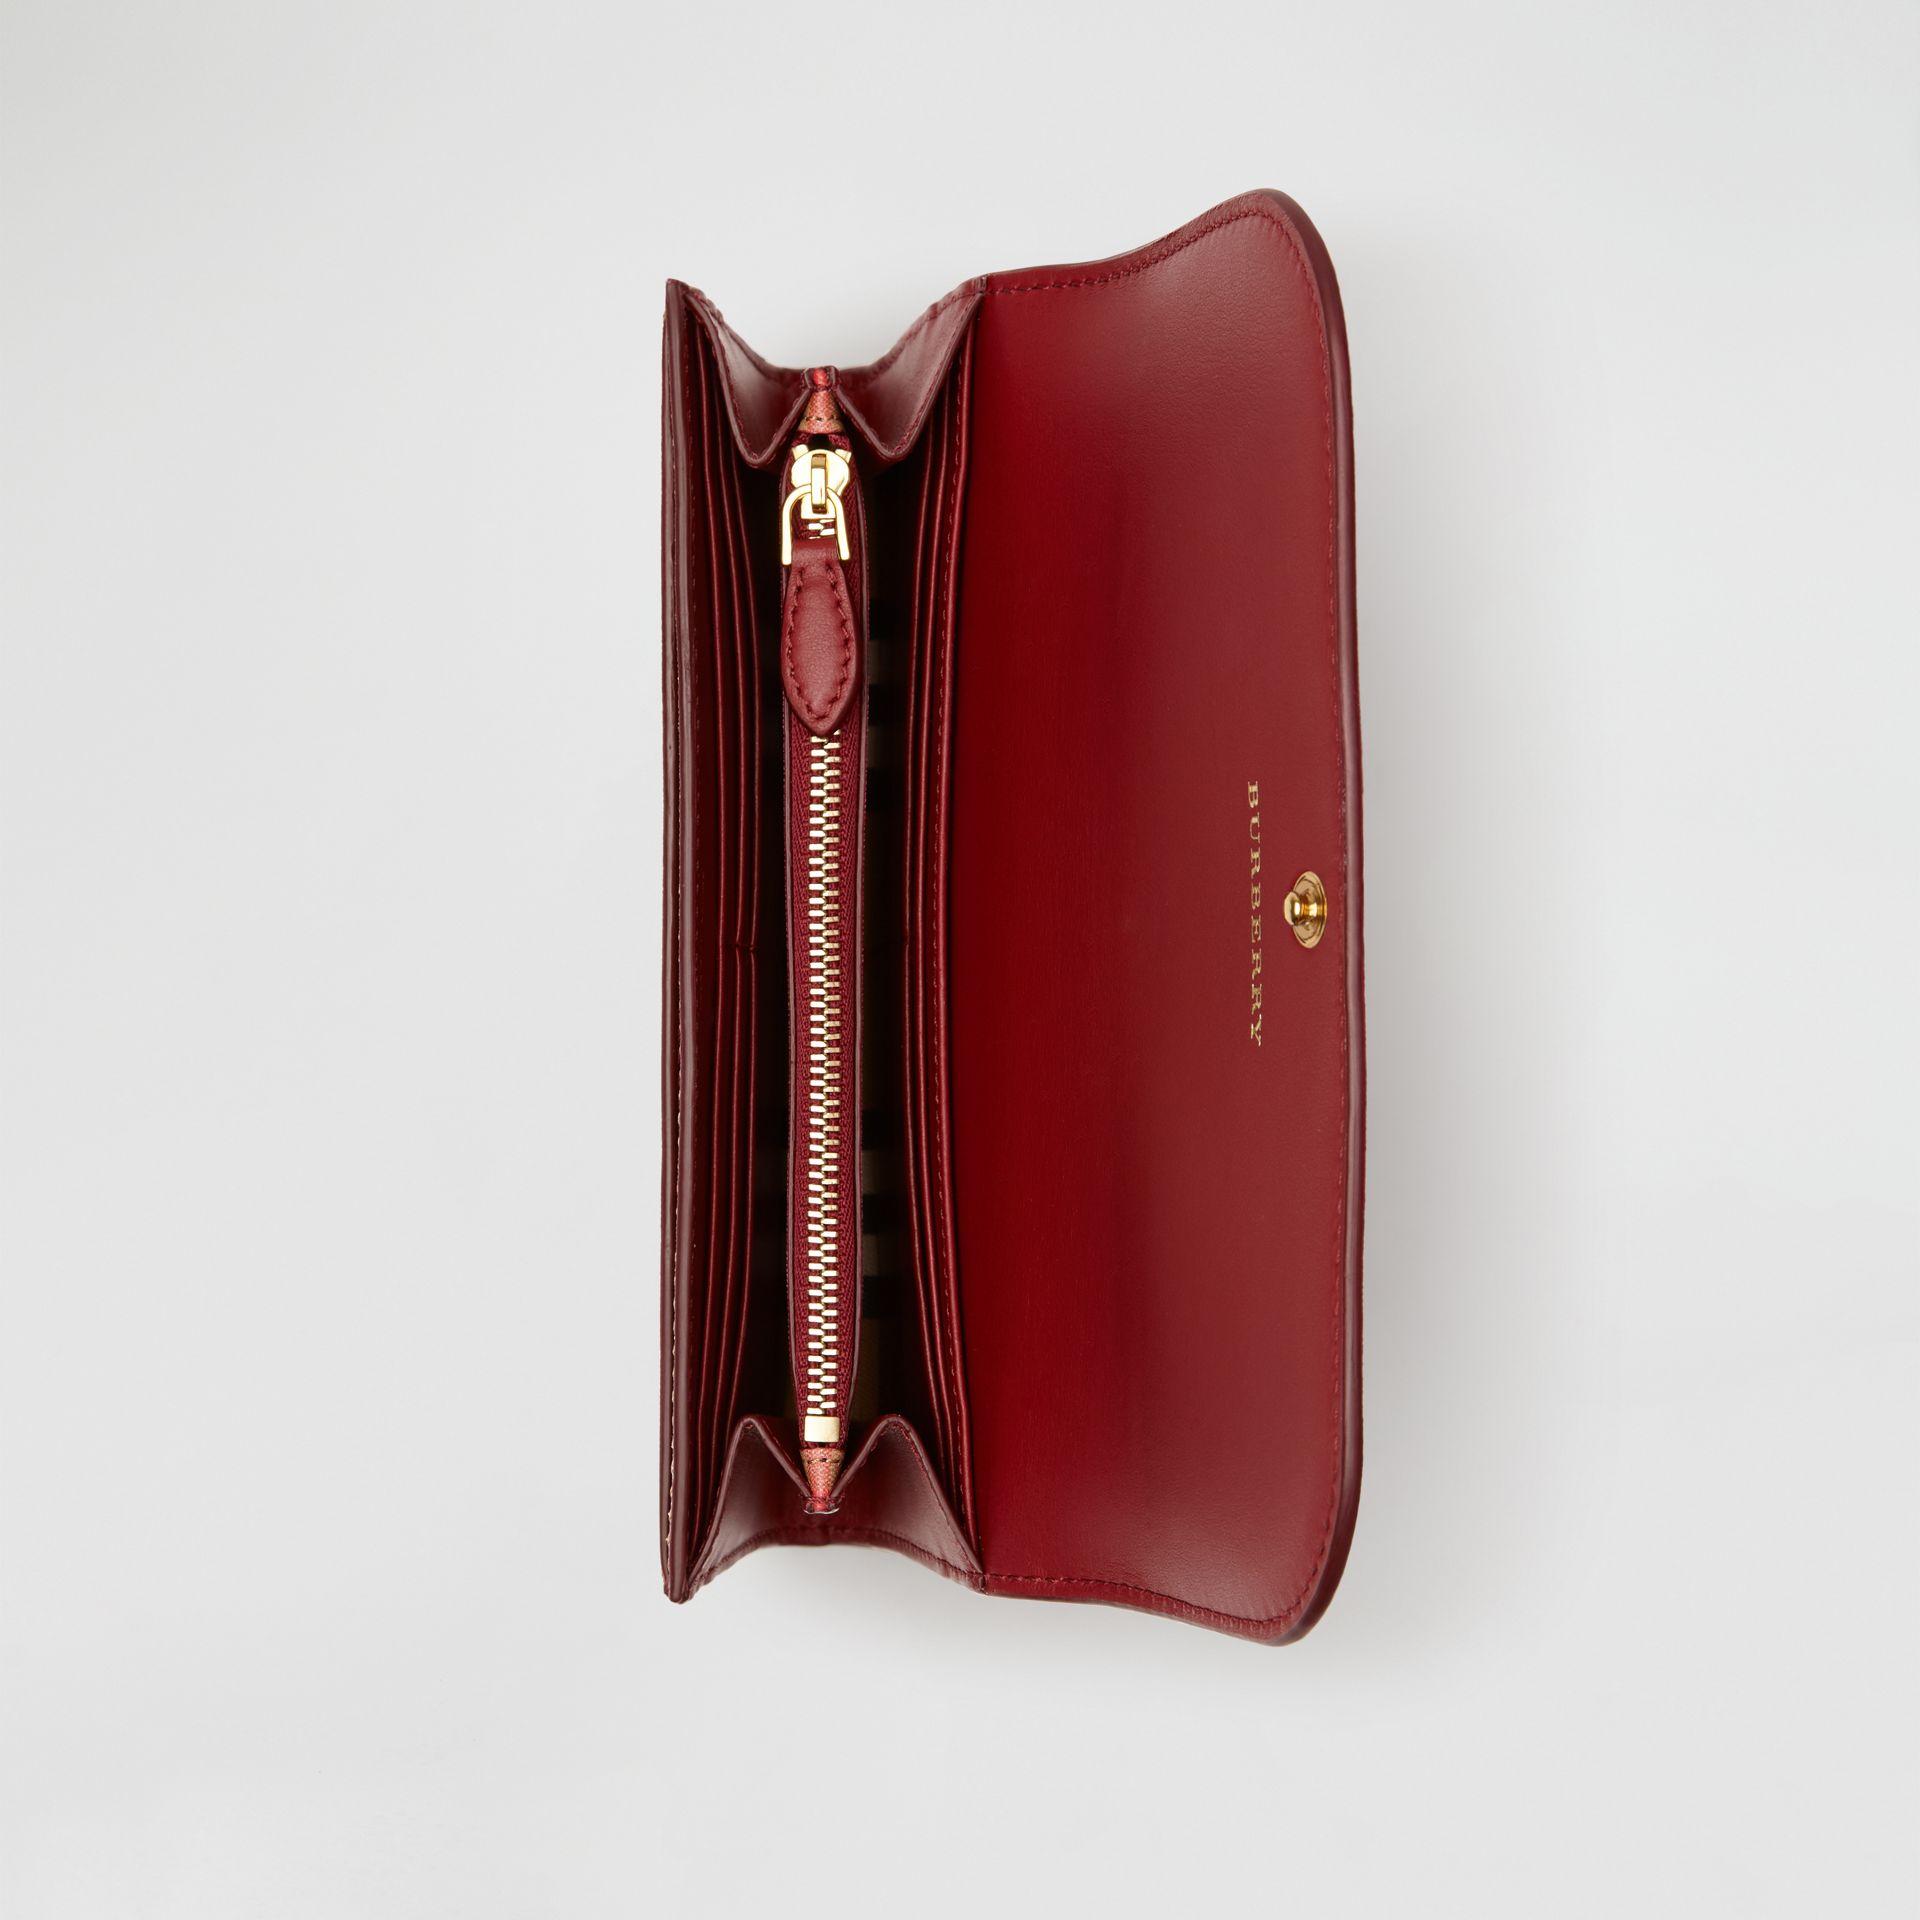 Vintage Check and Leather Continental Wallet in Crimson - Women | Burberry Australia - gallery image 2